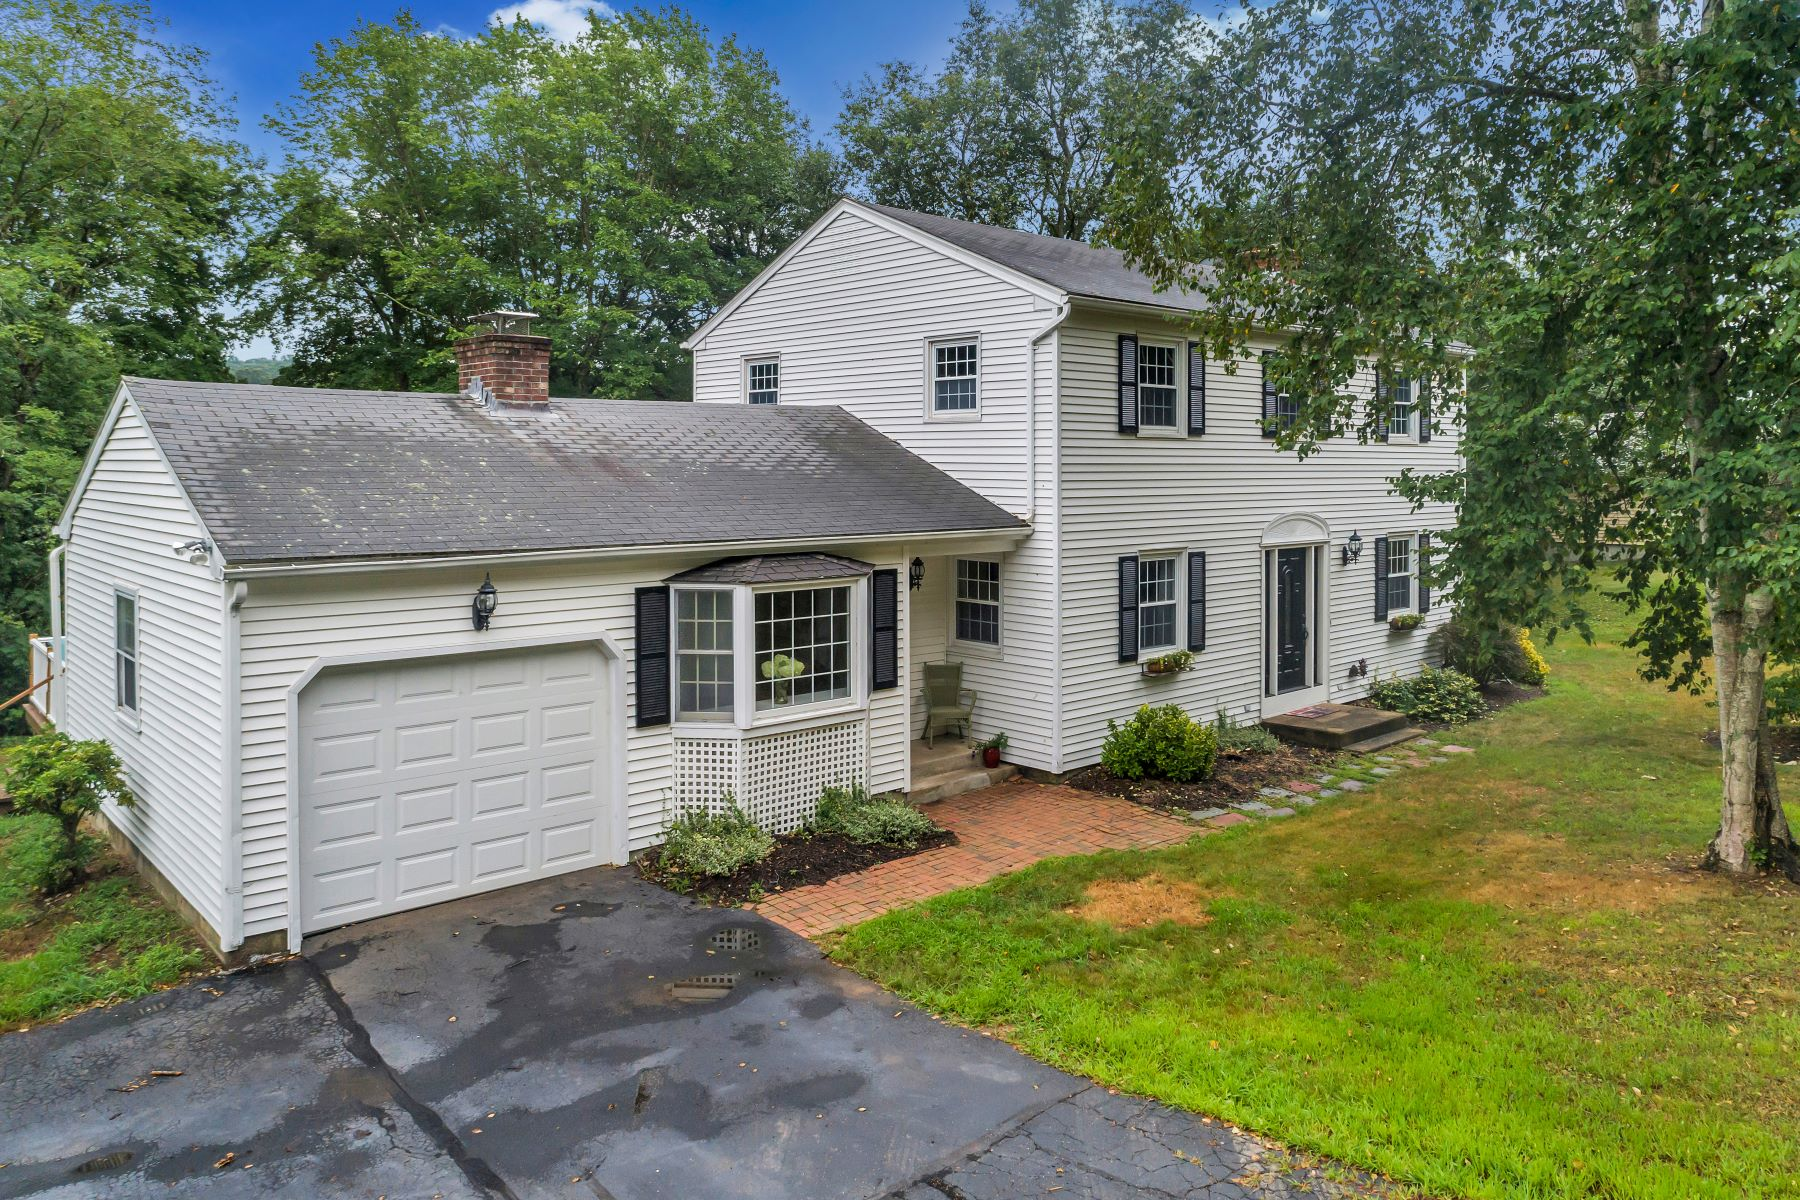 Single Family Homes for Sale at 23 Heritage Road East Lyme, Connecticut 06333 United States